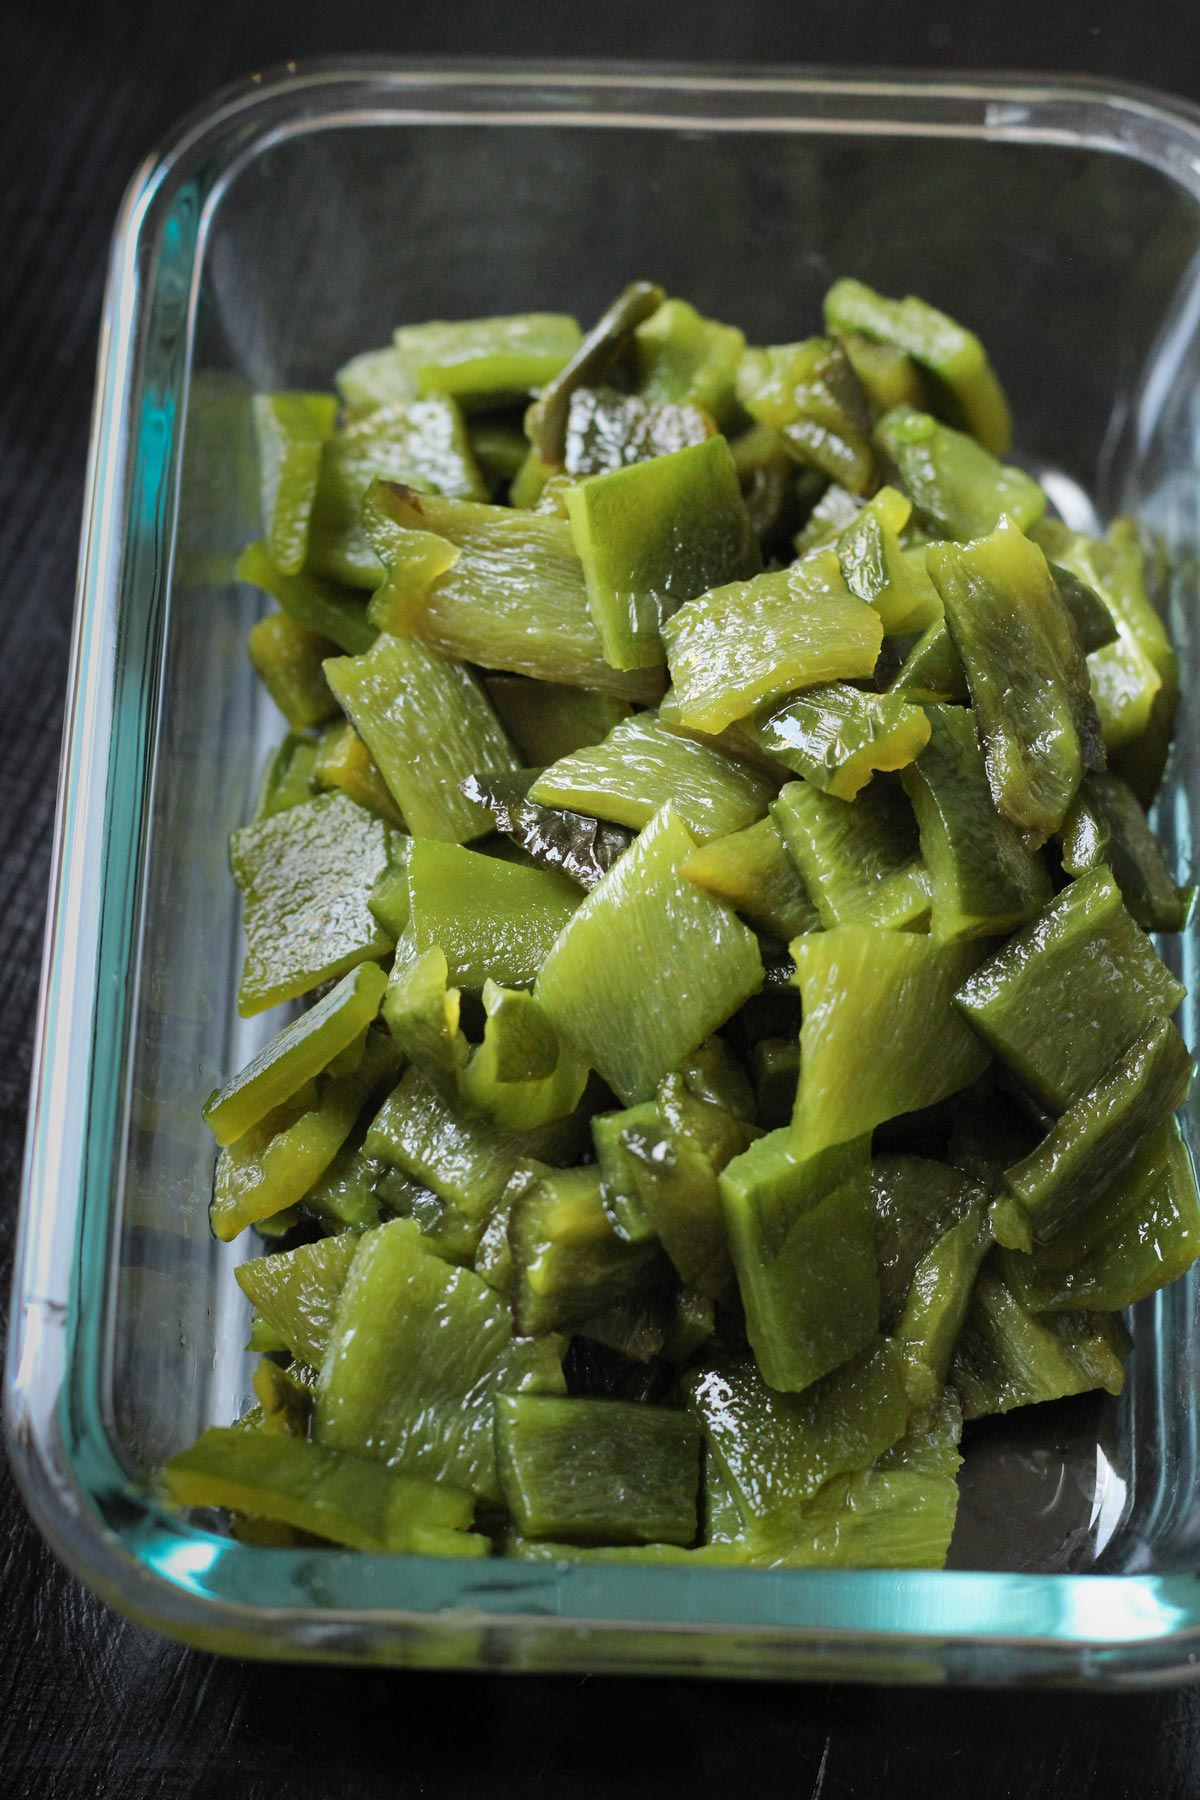 diced and roasted poblano peppers in a glass storage dish.